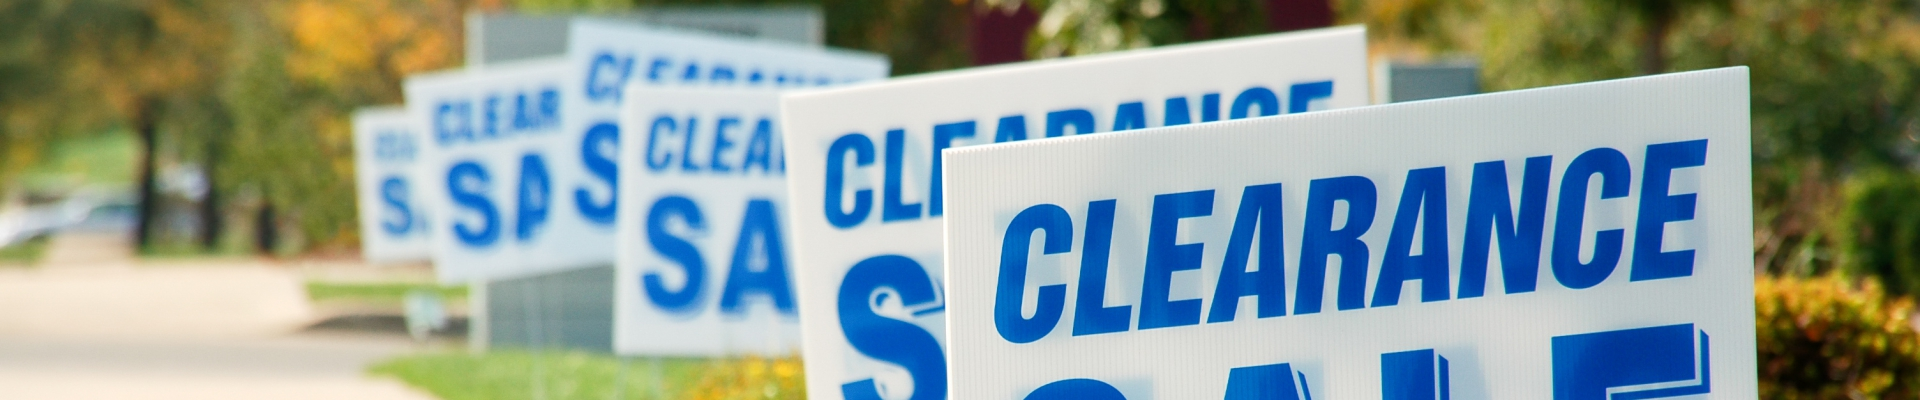 Yard Signs For Clearance Sale Cropped